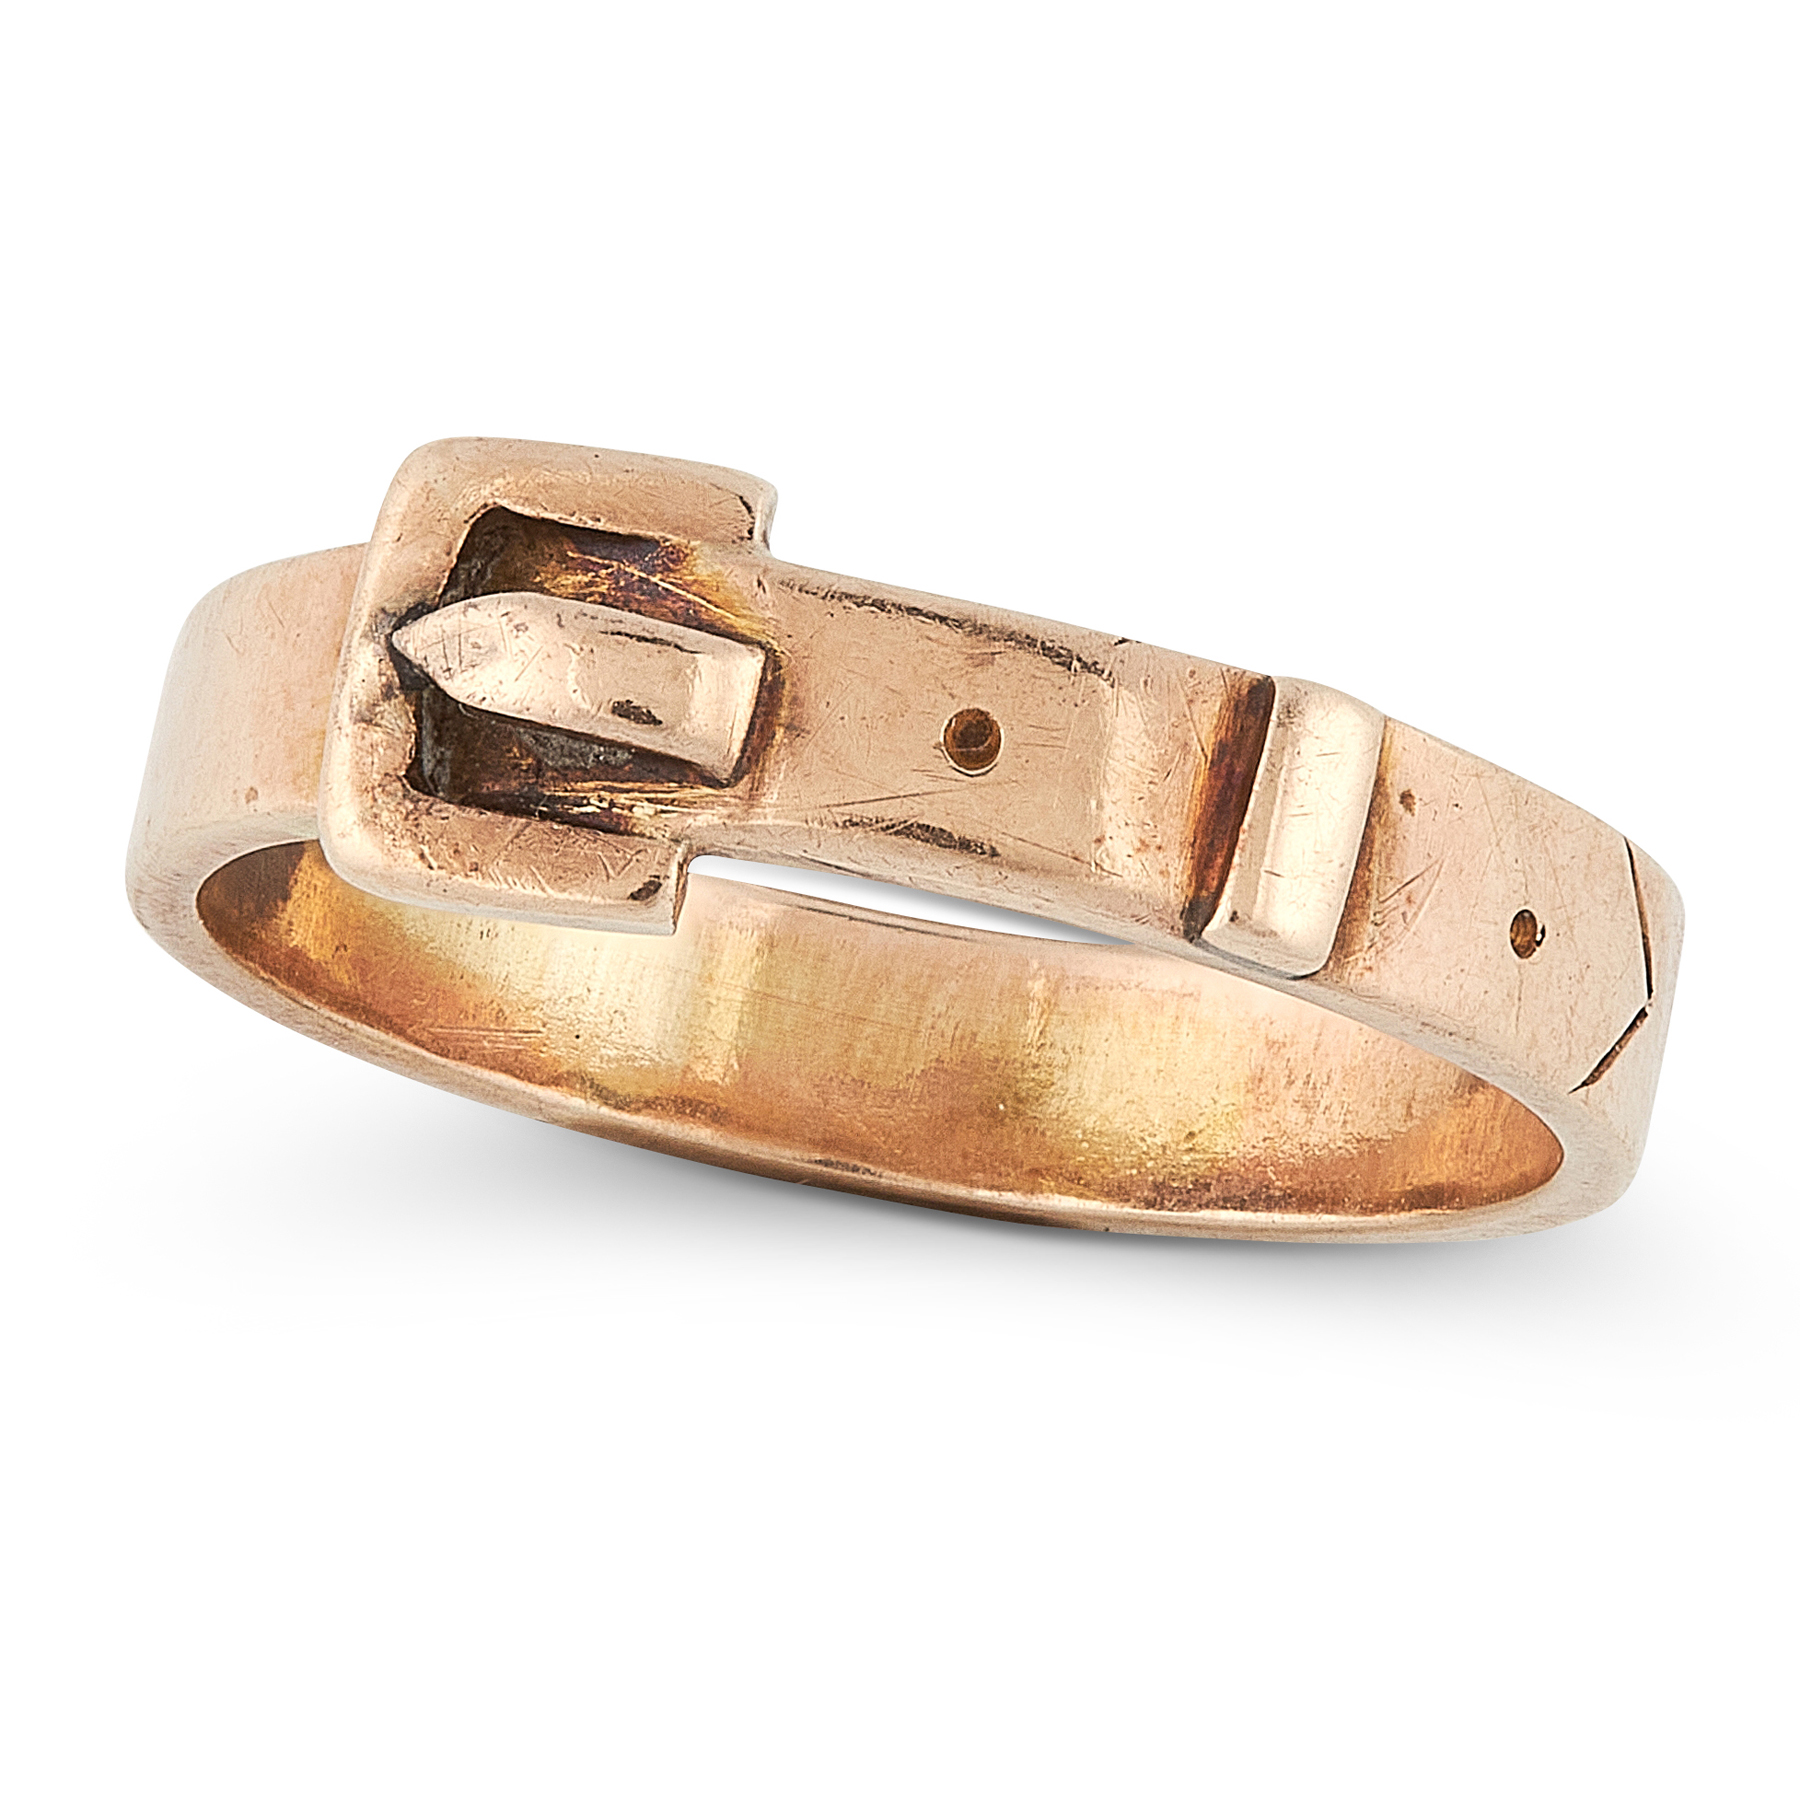 A BUCKLE RING in yellow gold, designed as a belt buckle, coiled around on itself, stamped 9ct,